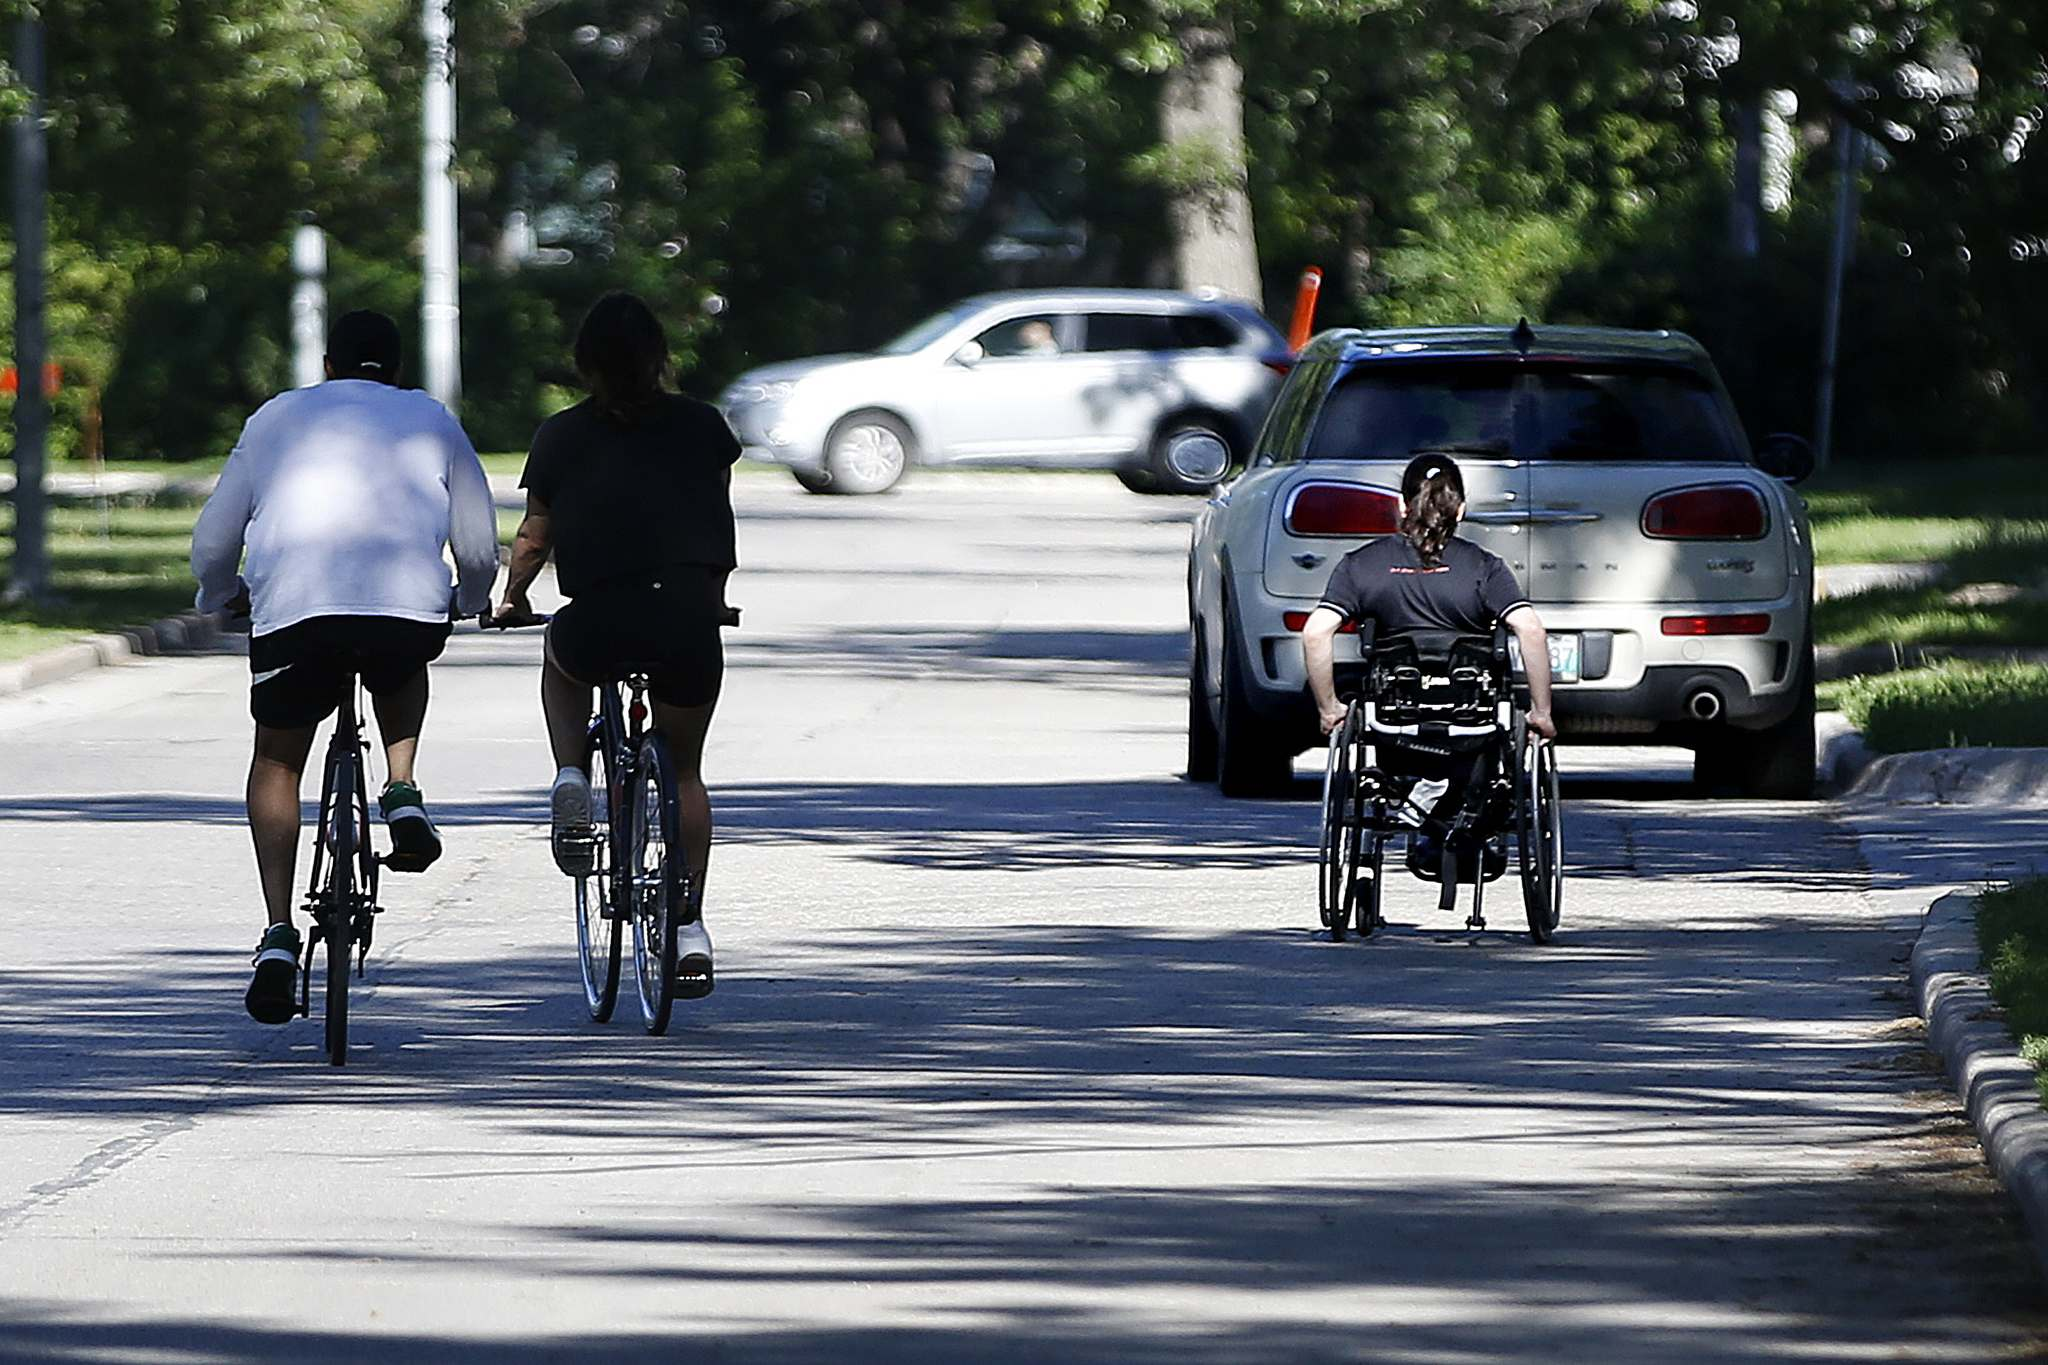 Winnipeg city council's executive policy committee has voted to reduce operations of the Wellington Crescent enhanced summer cycling route to Sundays and holidays only, starting Sept. 7. (John Woods / Winnipeg Free Press files)</p></p>